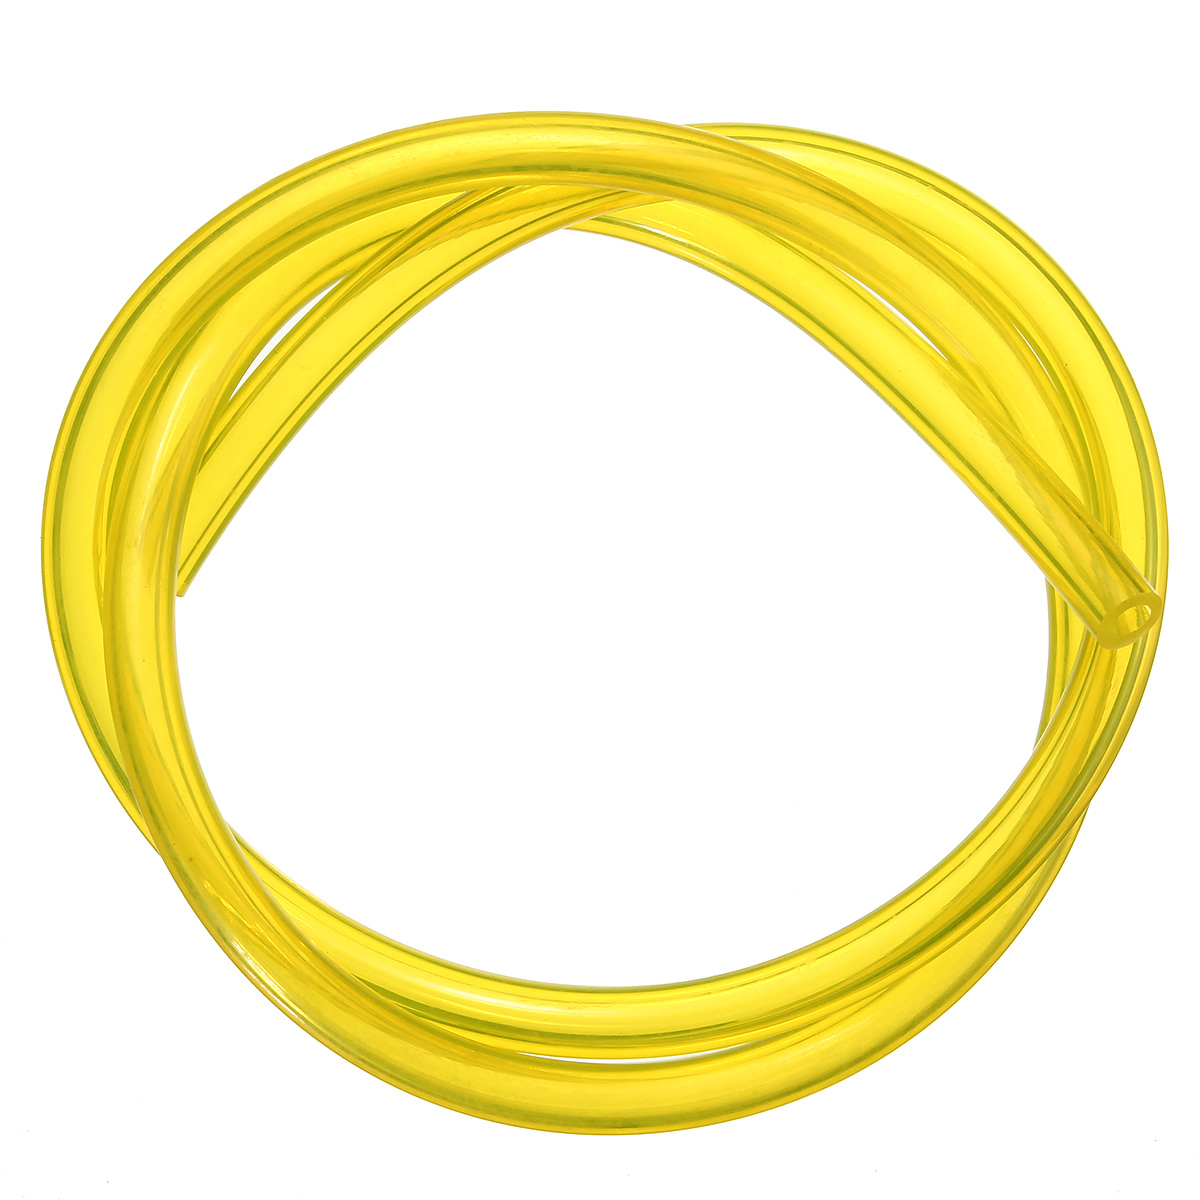 3x6mm Fuel Hose Fuel Filter Hose For Mower Motorcycle Scooter Brushcutter